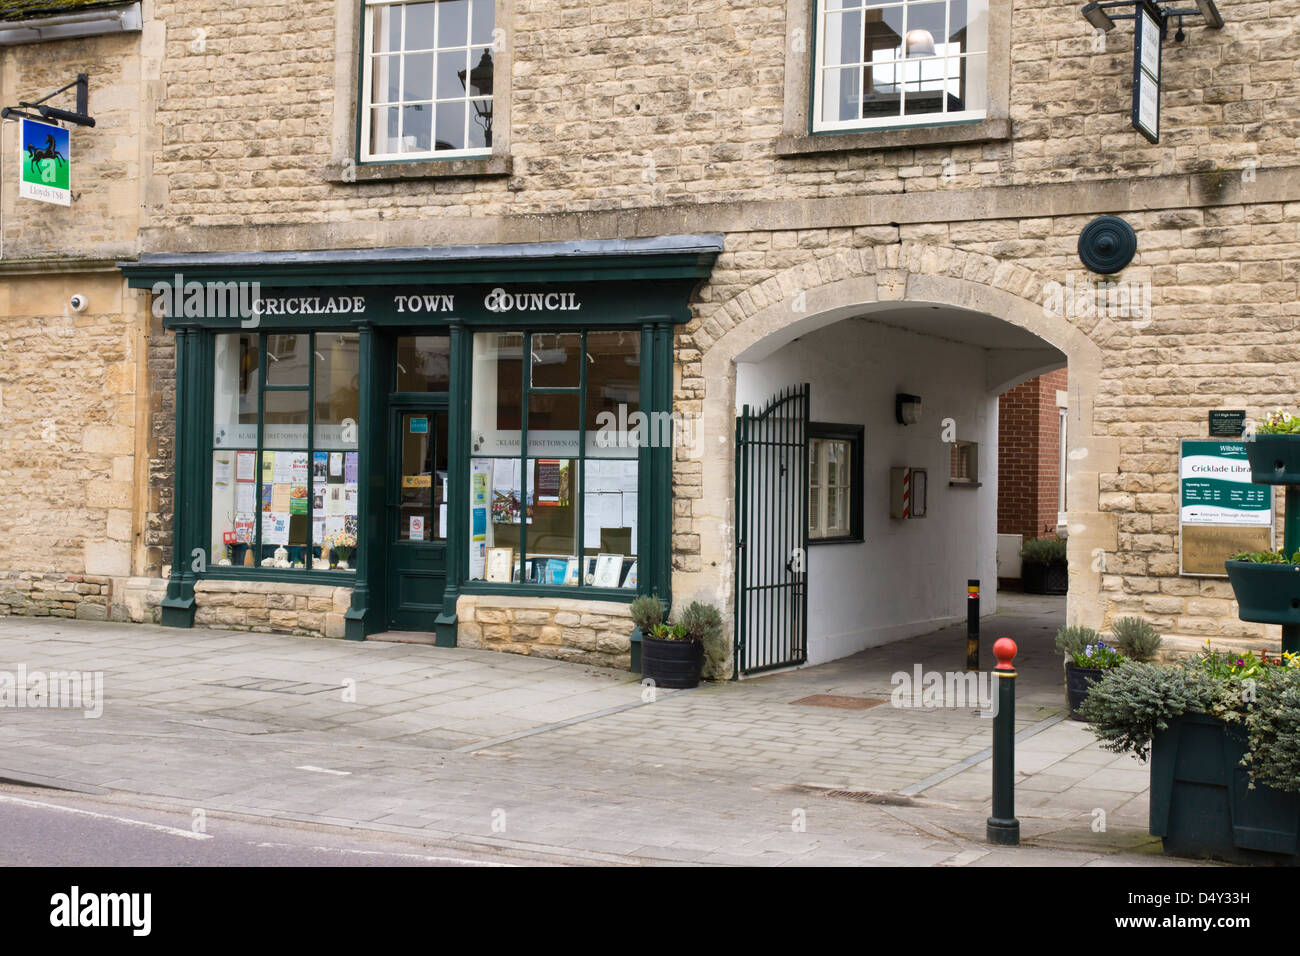 Cricklade town Council, a small town in Wiltshire England UK - Stock Image